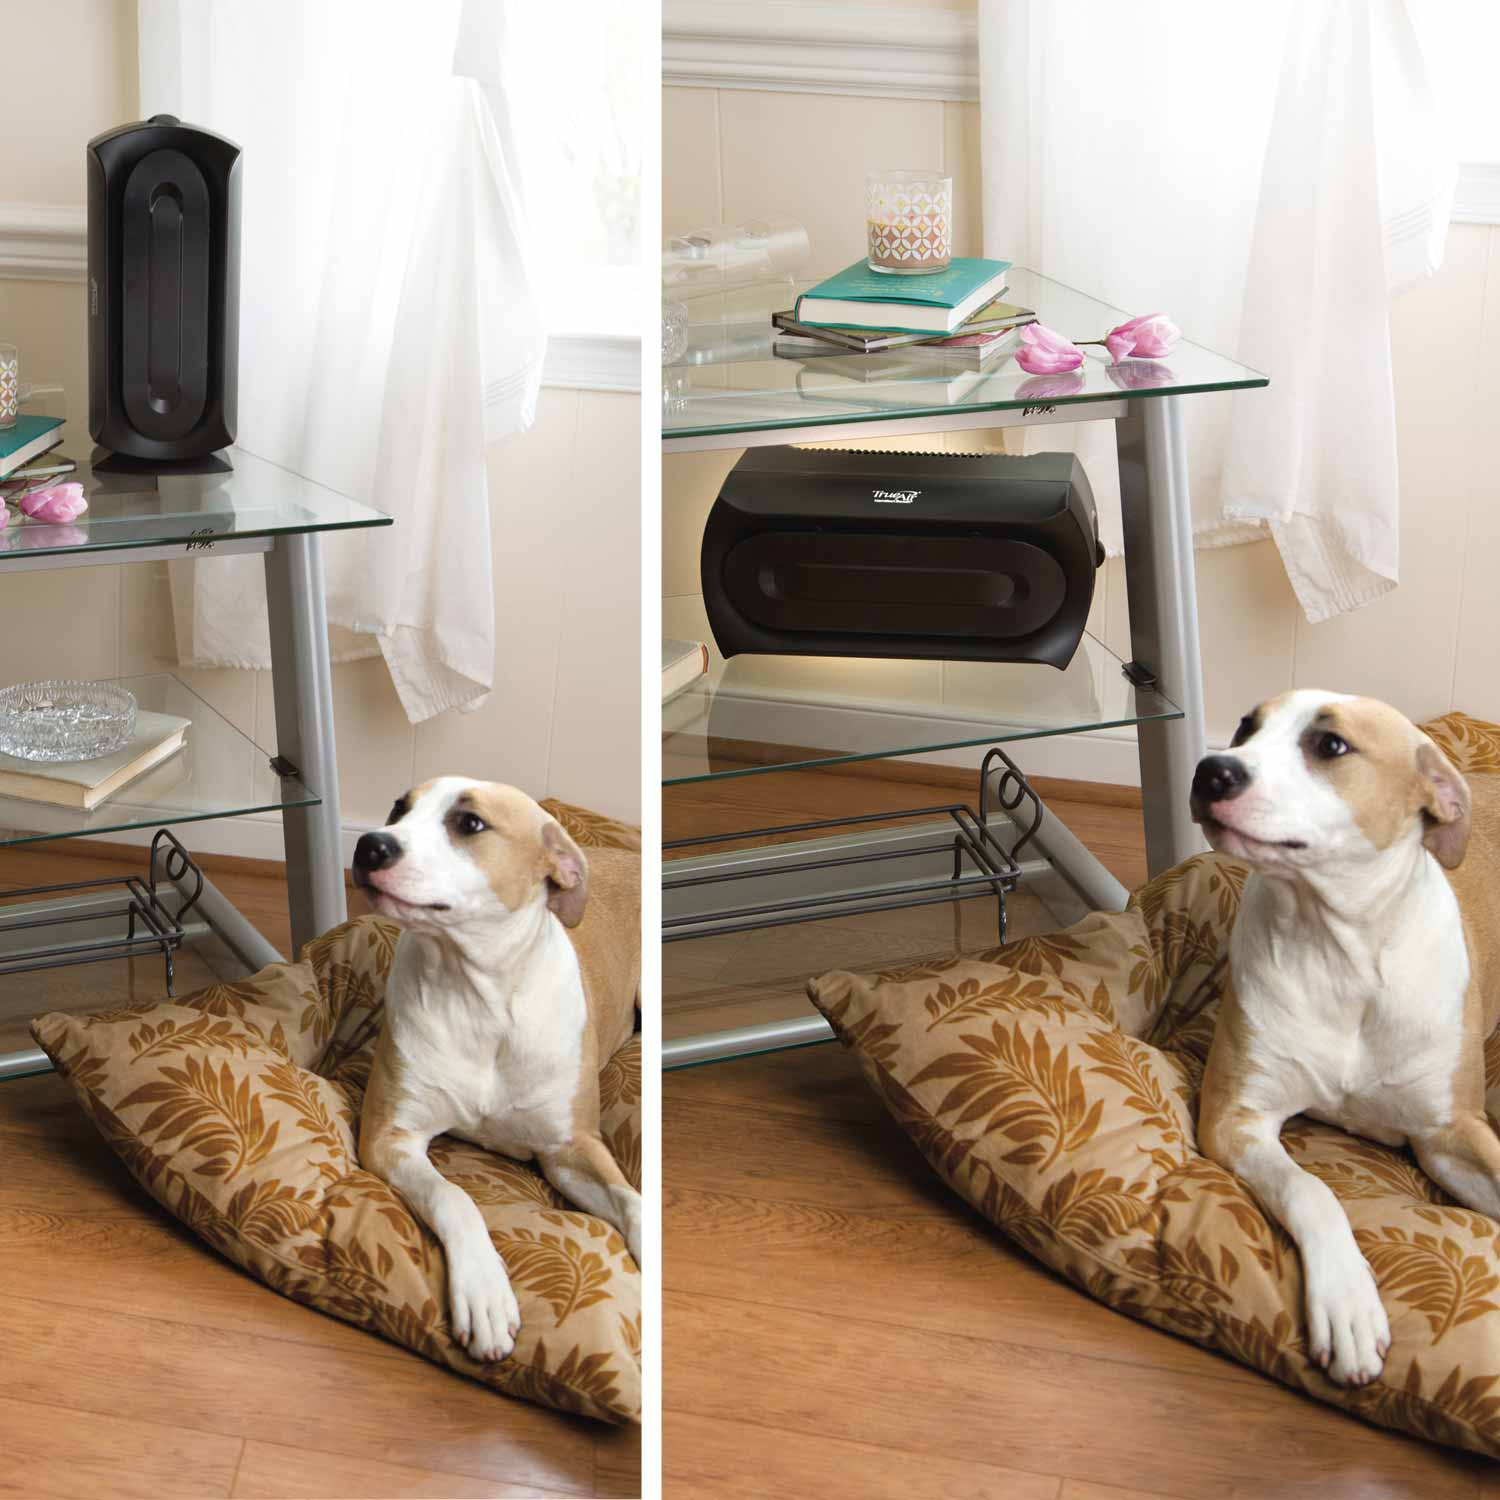 TrueAir Air Purifier 04386 is compact and can be used vertically or horizontally to fit any space.